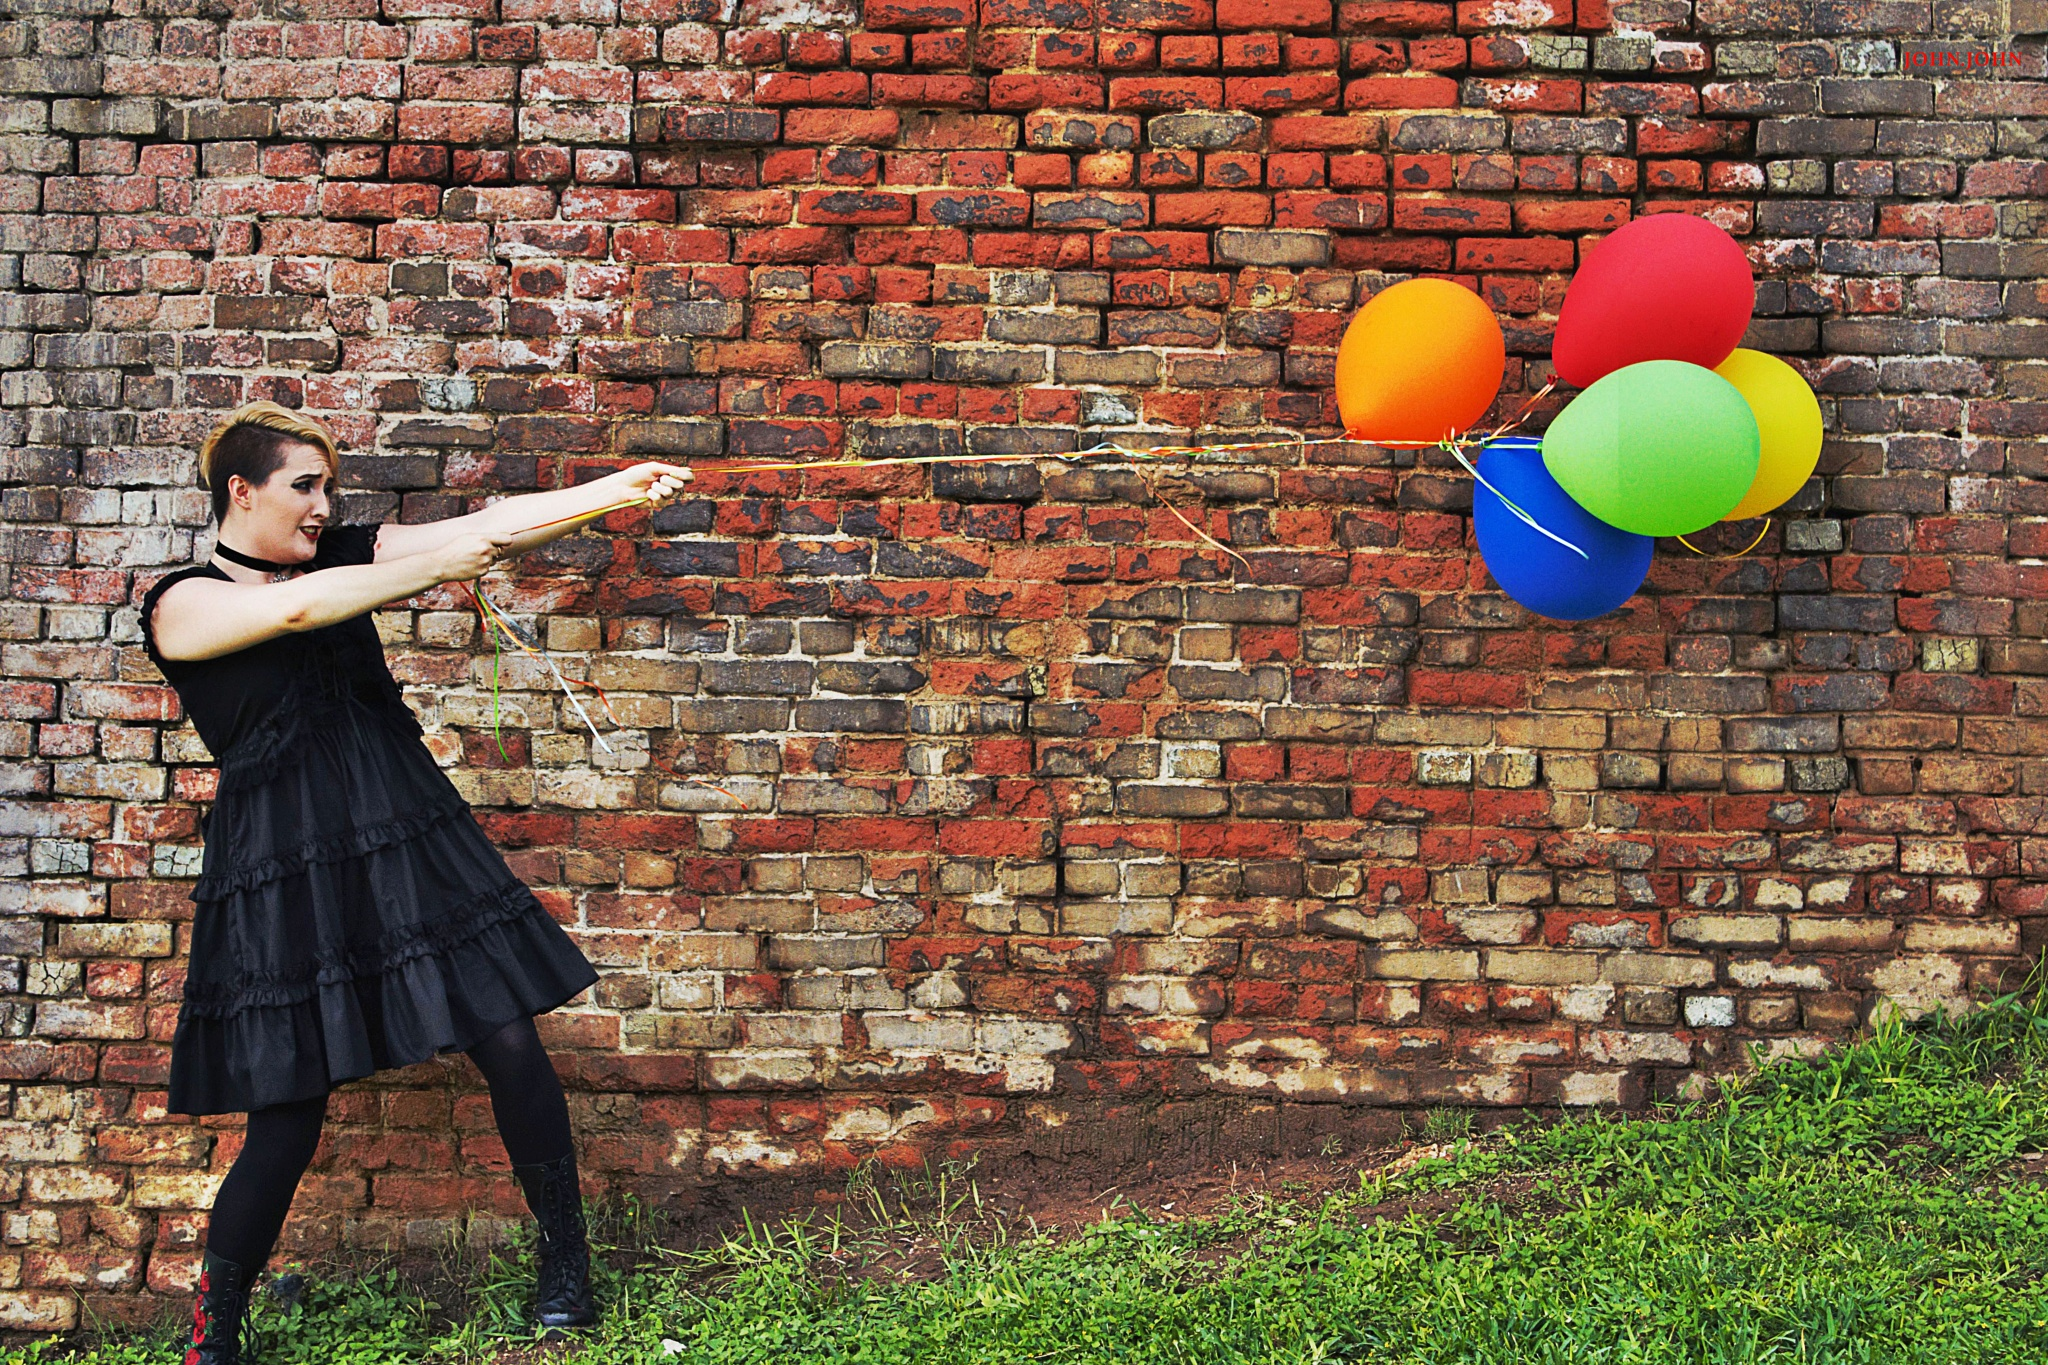 Photo in Fashion #model #ballons #colors #blackdress #dress #bricks #texas #wind #johnjohnphotos #femaleleadsinger #strong #gain #control #fashion #life #modelphotography